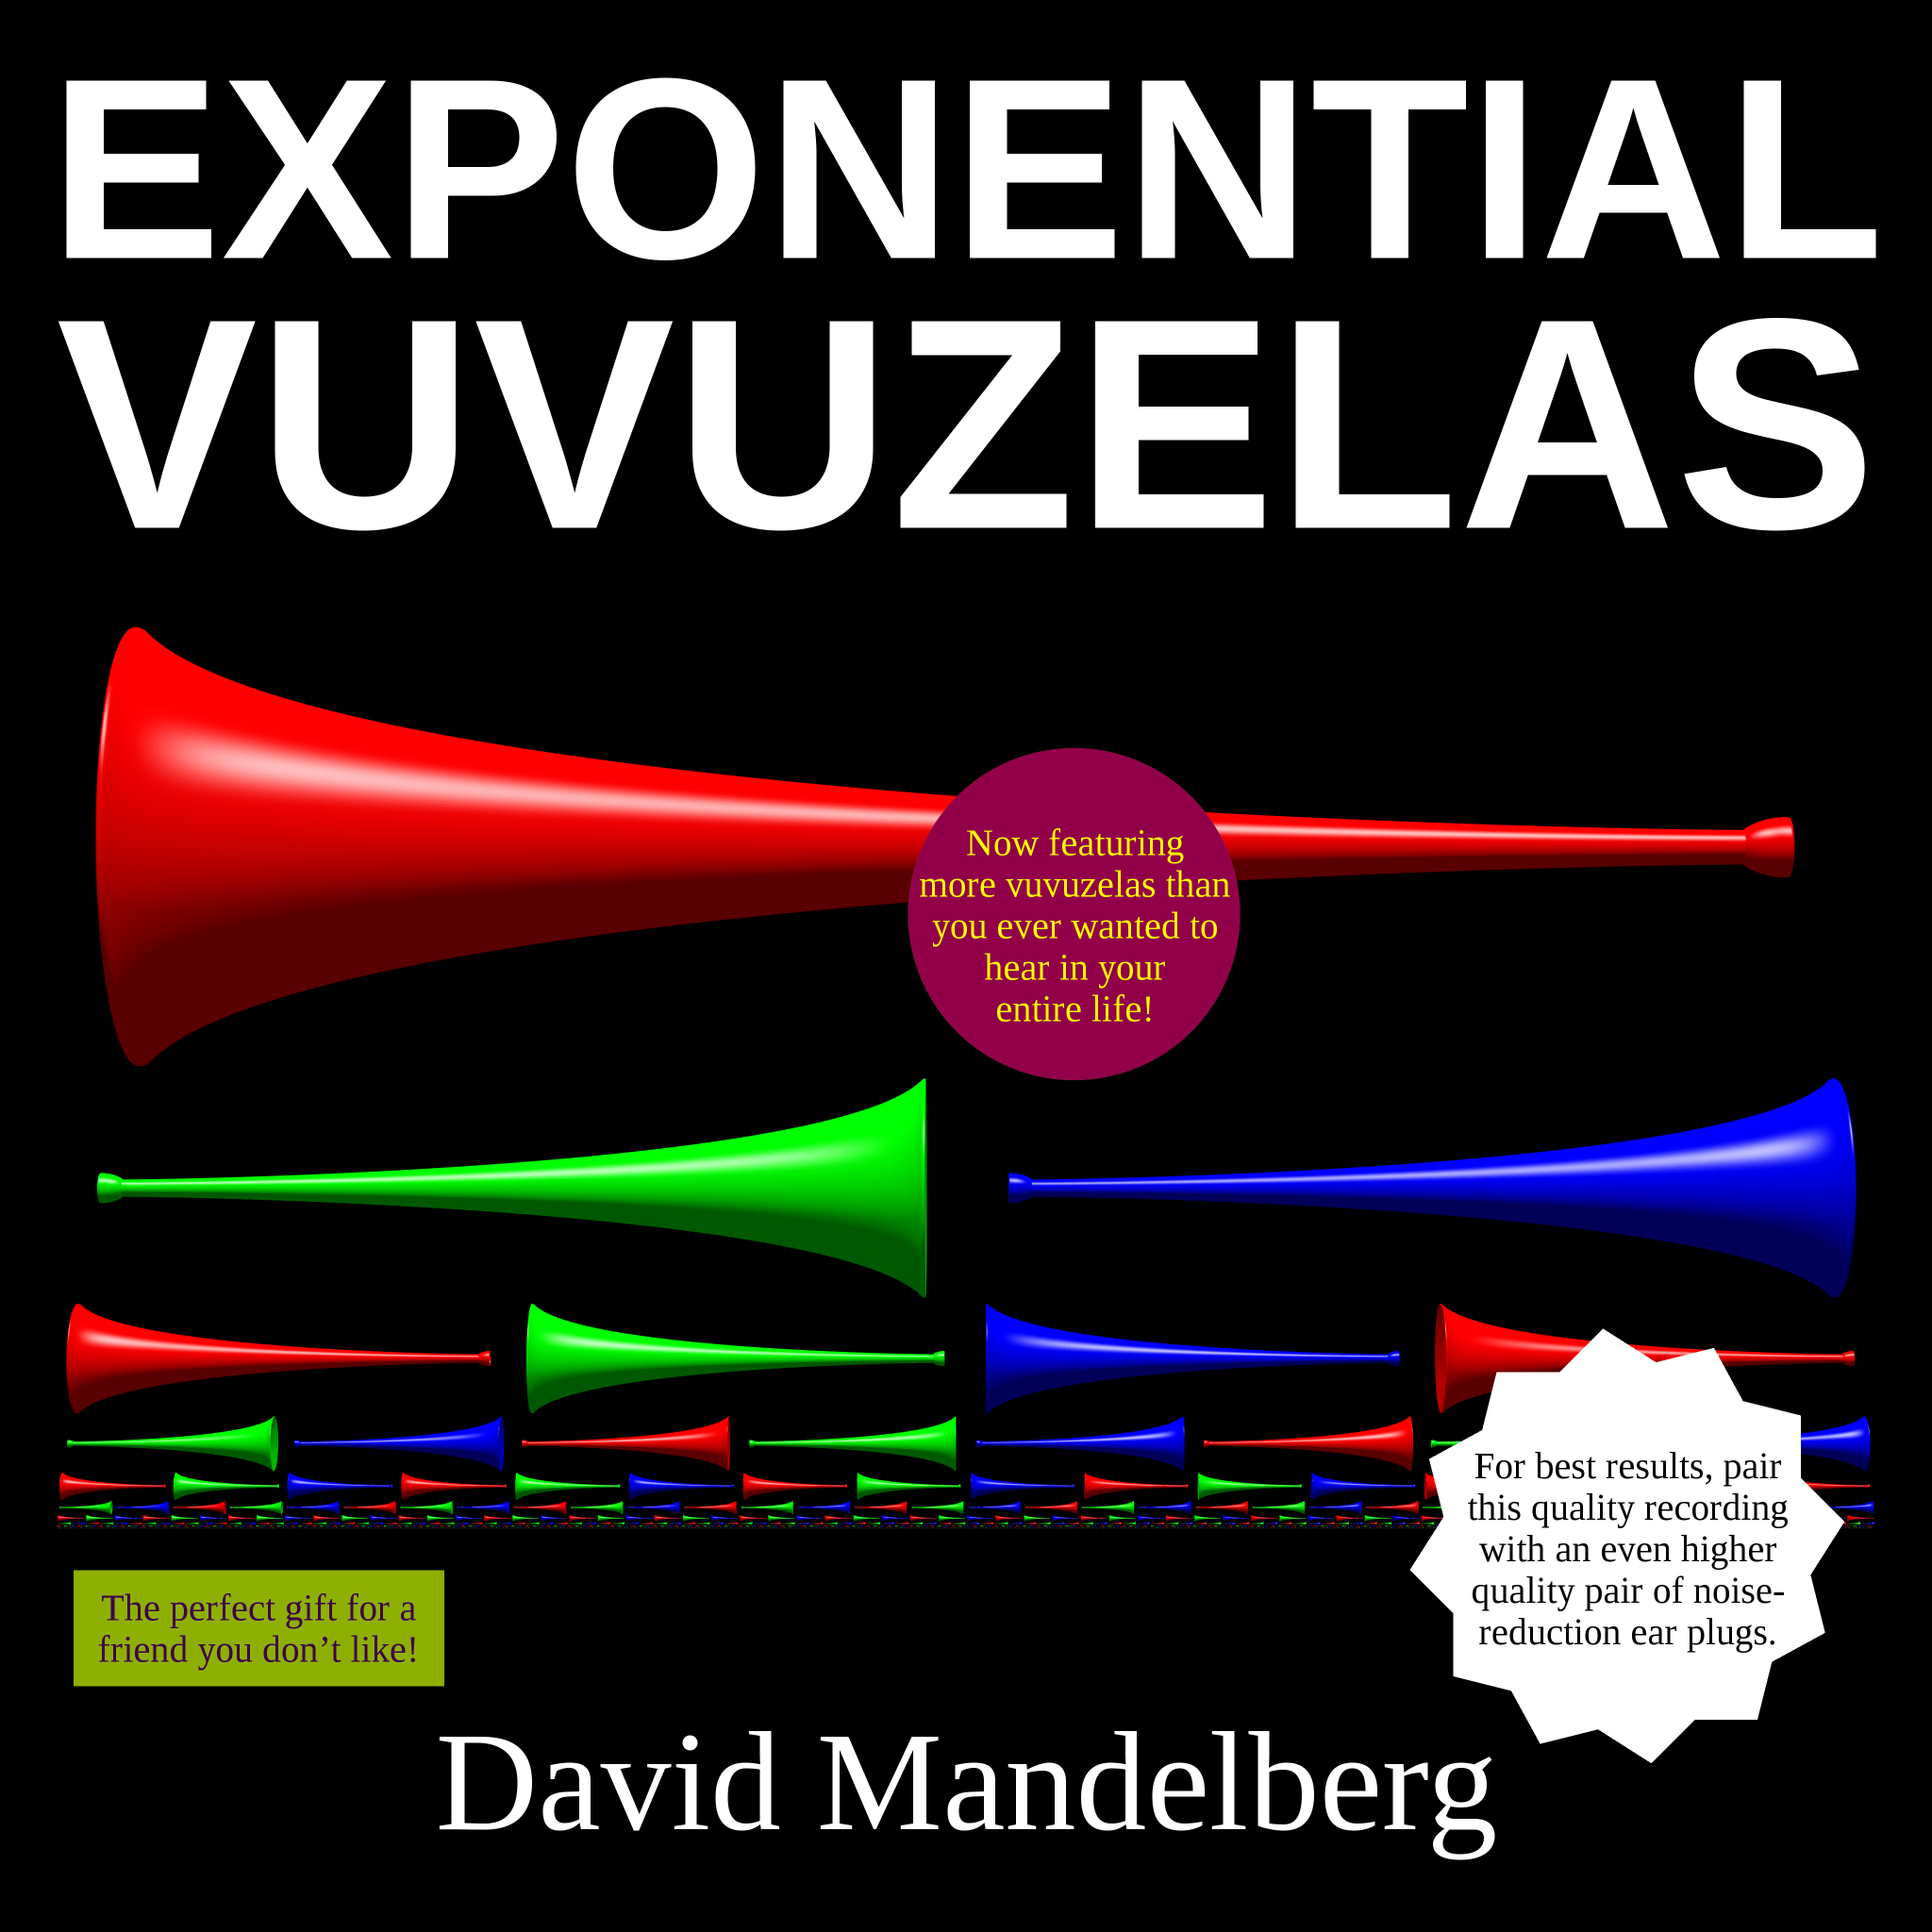 "Image of many vuvuzelas in an exponential pattern, with title ""Exponential Vuvuzelas"" by David Mandelberg. Stickers on the image read: ""Now featuring more vuvuzelas than you ever wanted to hear in your entire life!"" / ""The perfect gift for a friend you don't like!"" / ""For best results, pair this quality recording with an even higher quality pair of noise‐reduction ear plugs."""